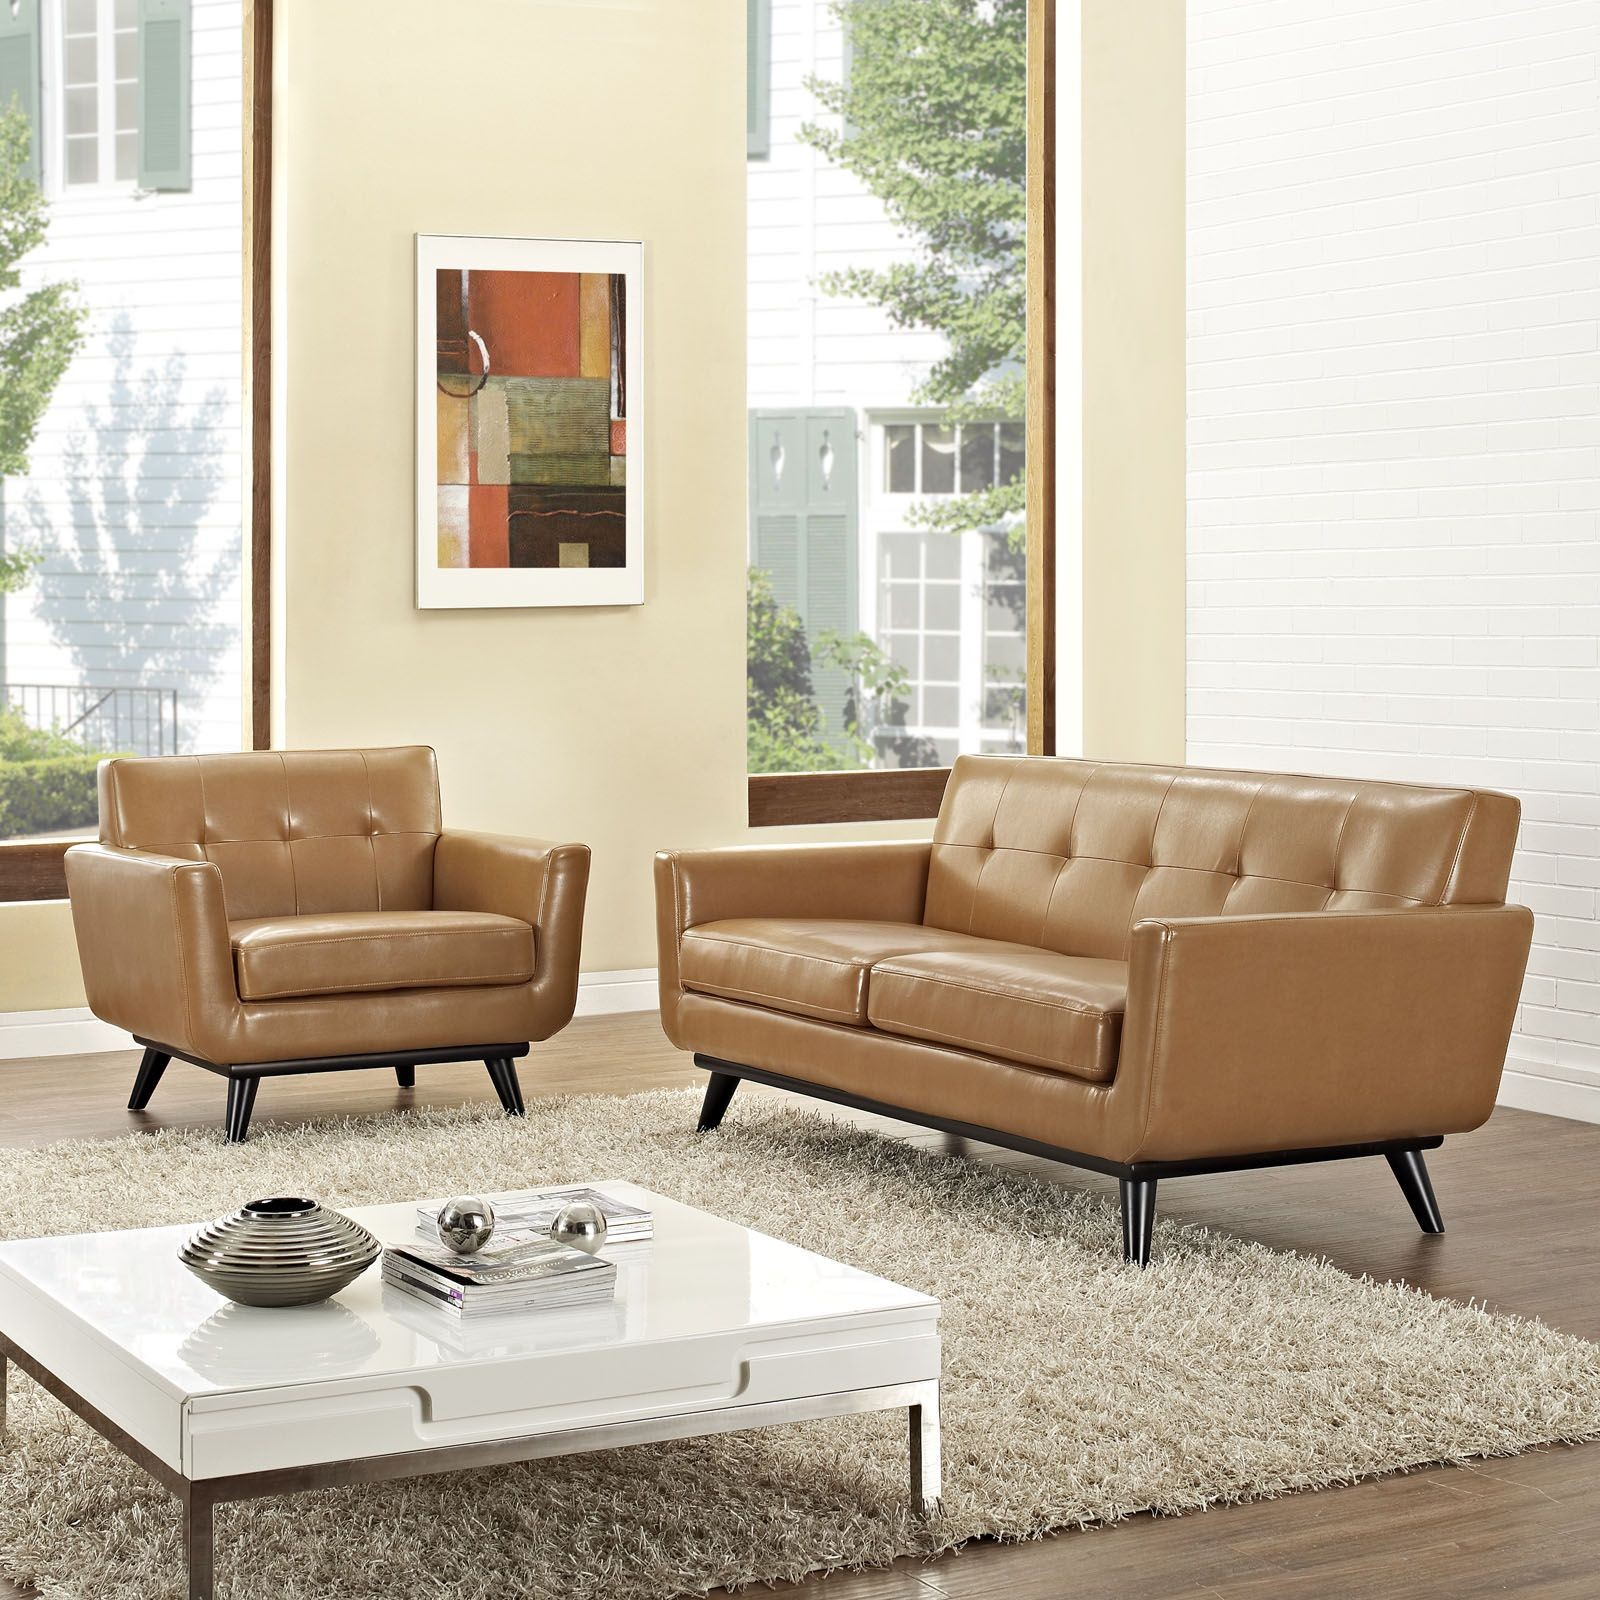 Engage tan 2 piece leather living room set from renegade coleman furniture 2 piece leather living room set